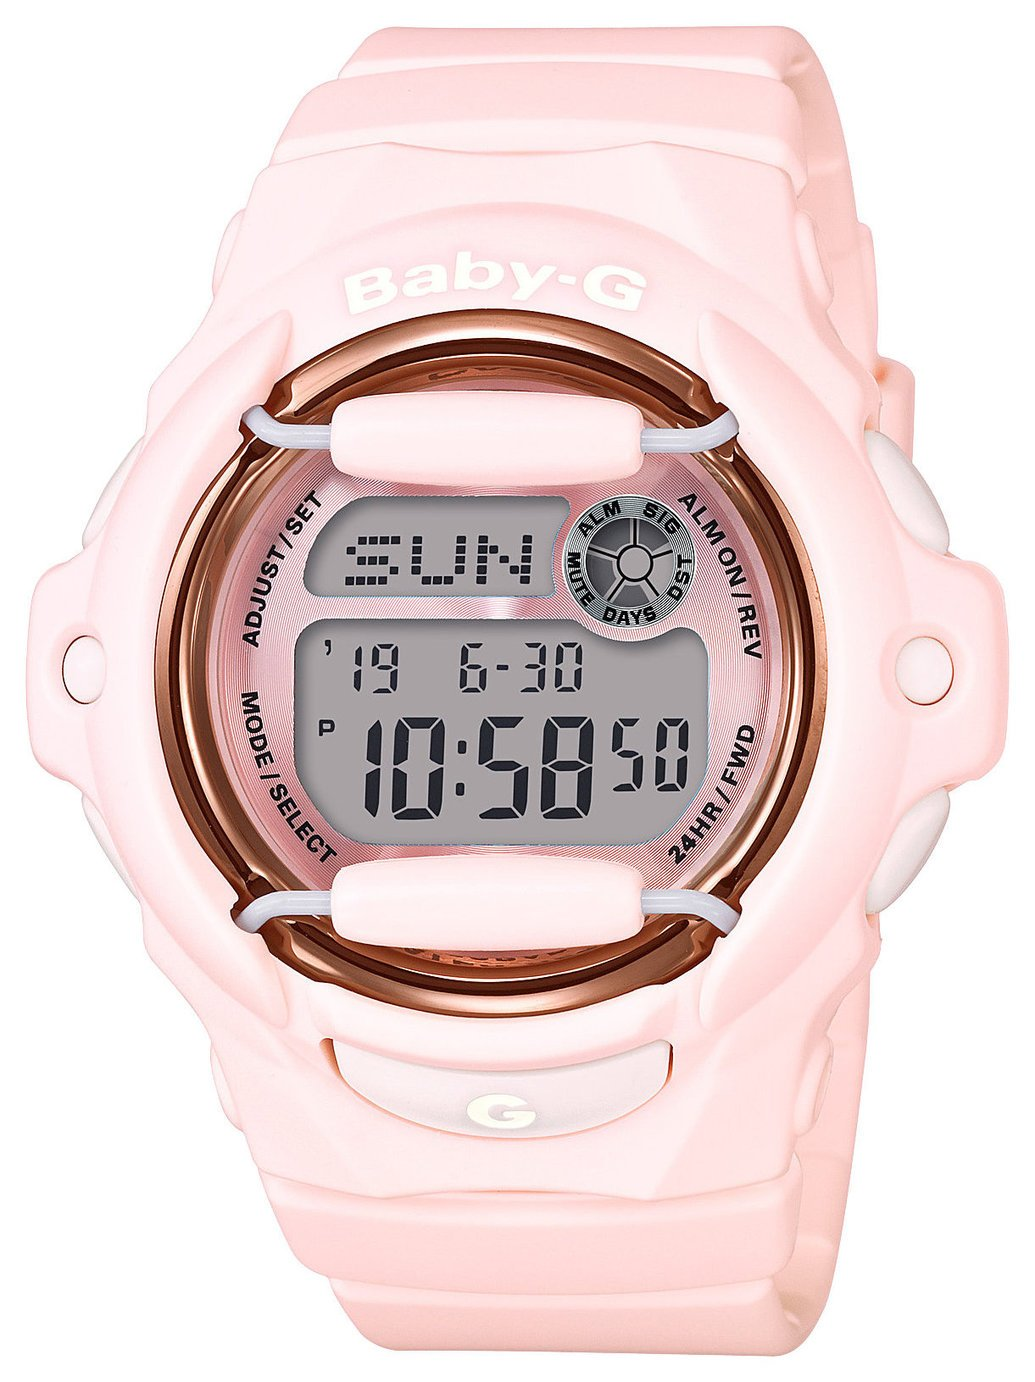 Casio Baby-G Pink World Time Telememo Digital Watch from Baby-G